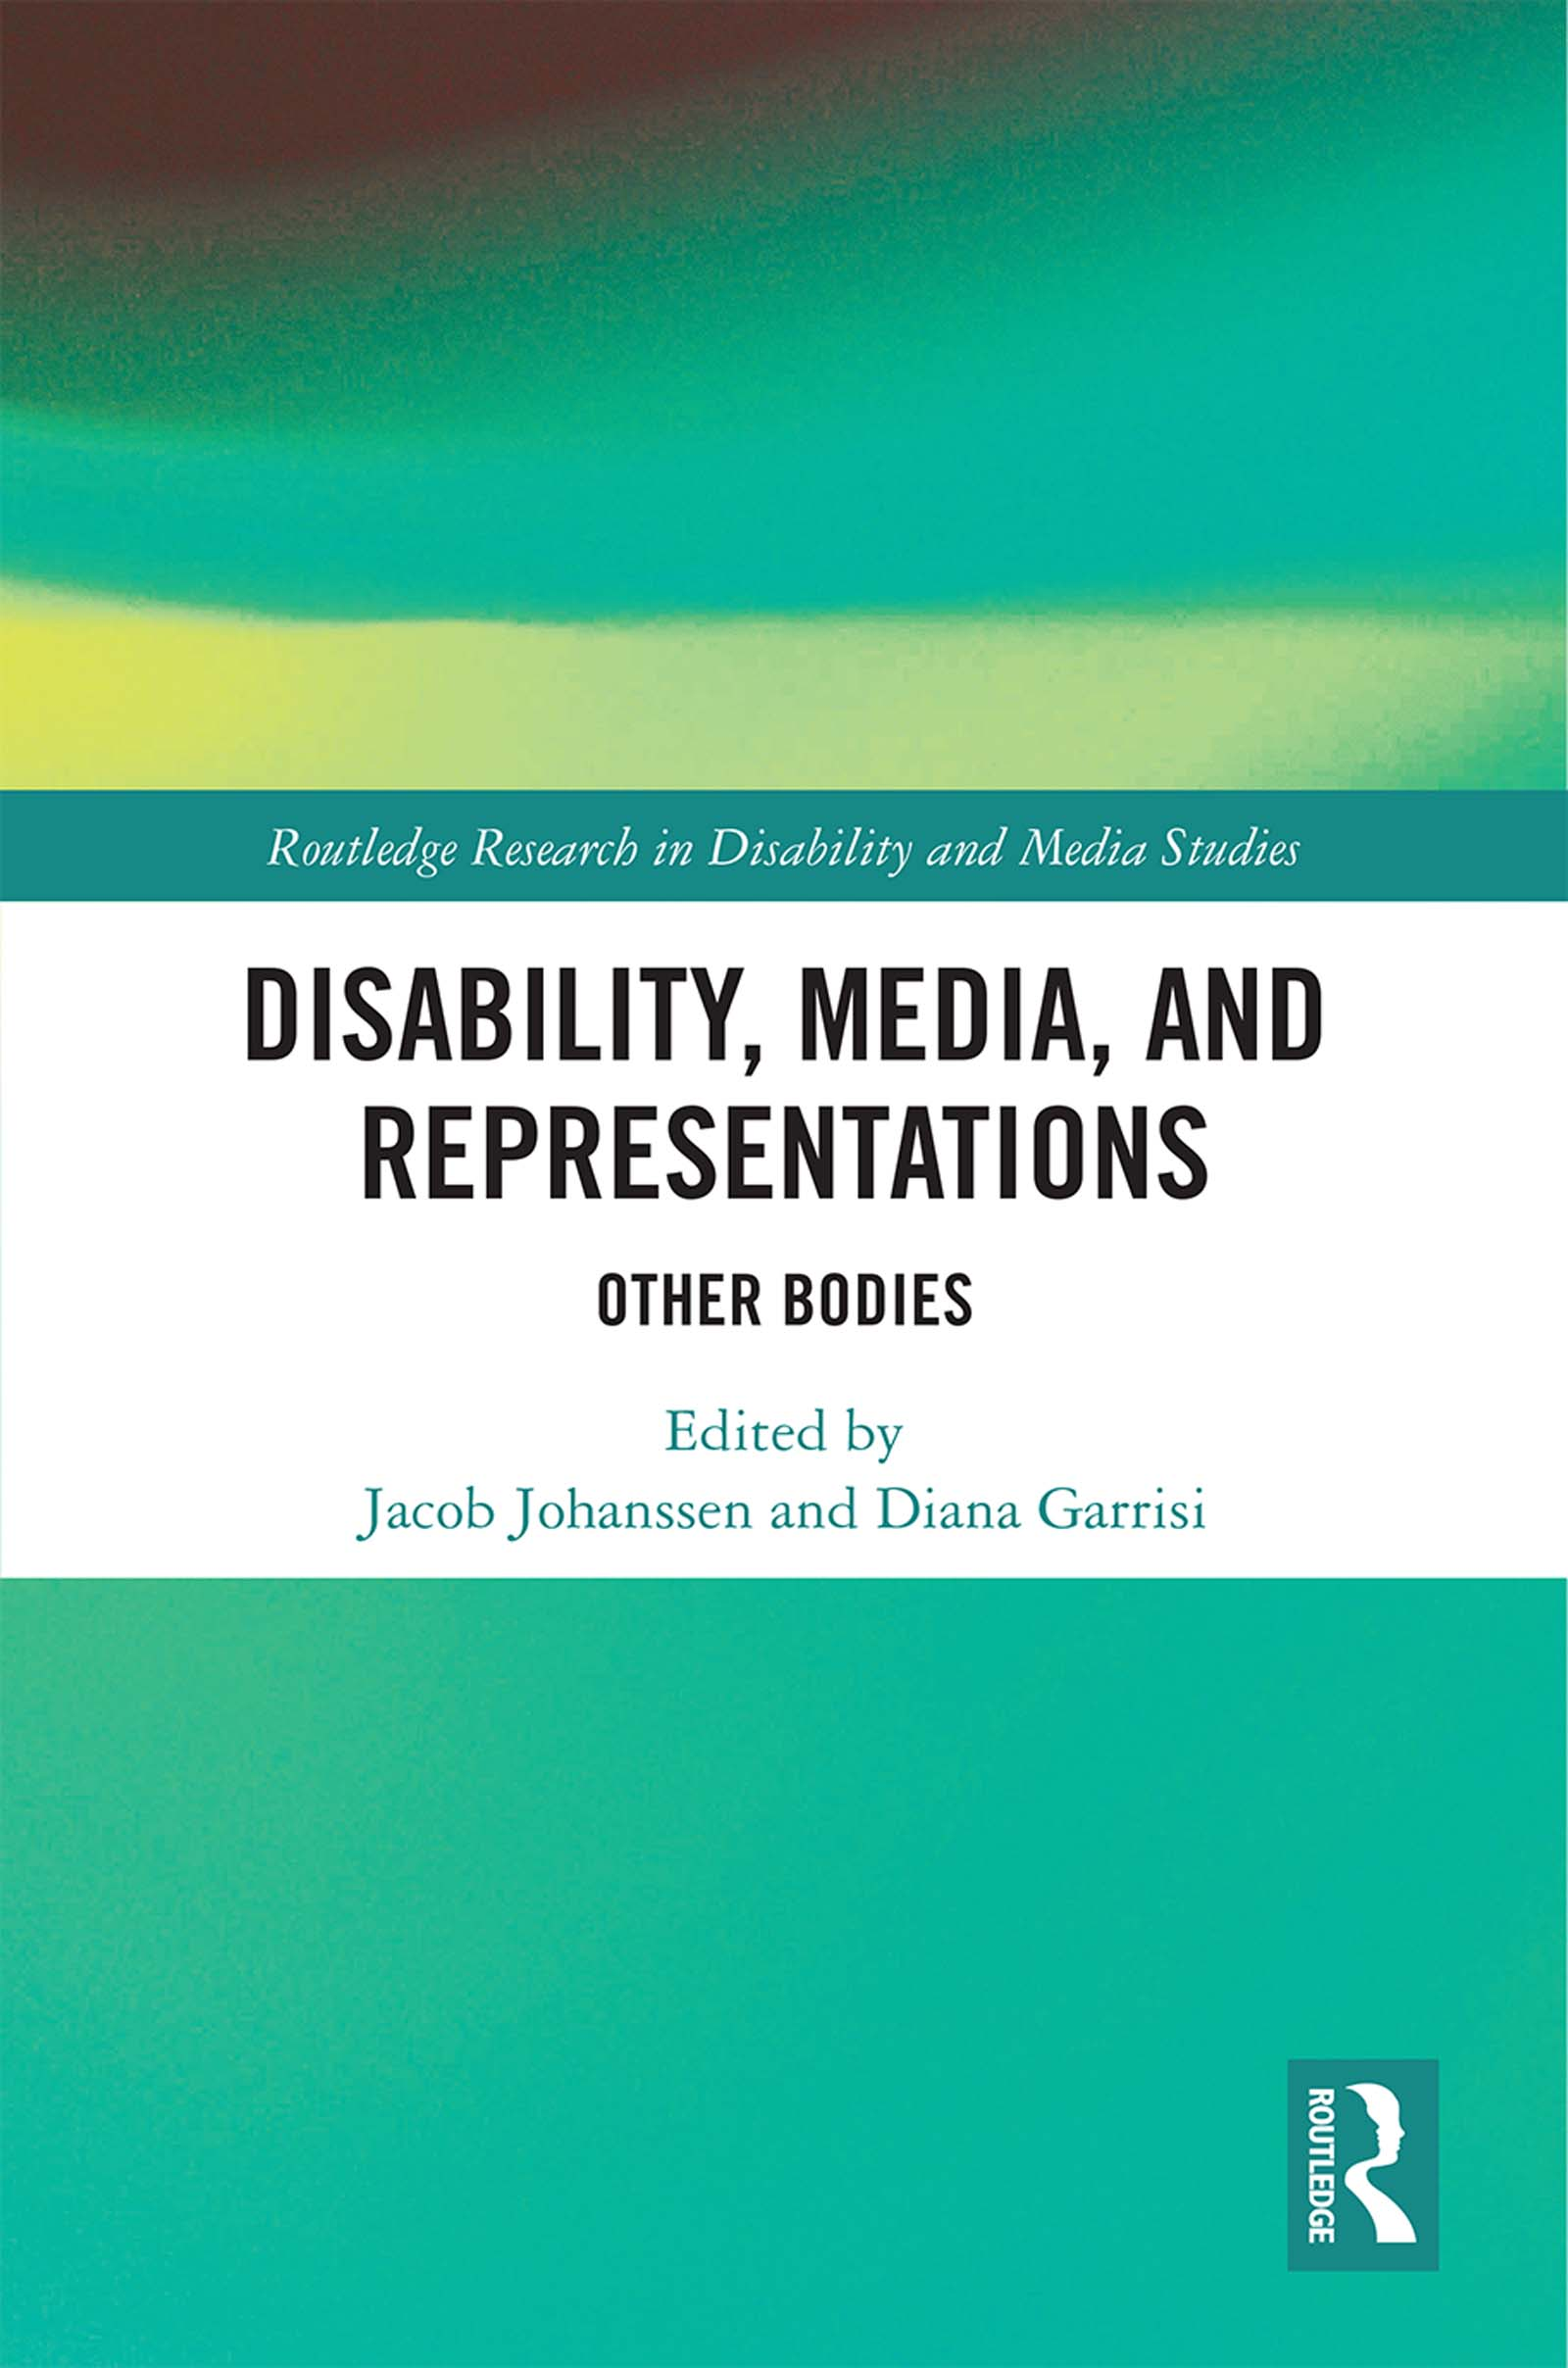 Disability, Media, and Representations: Other Bodies book cover